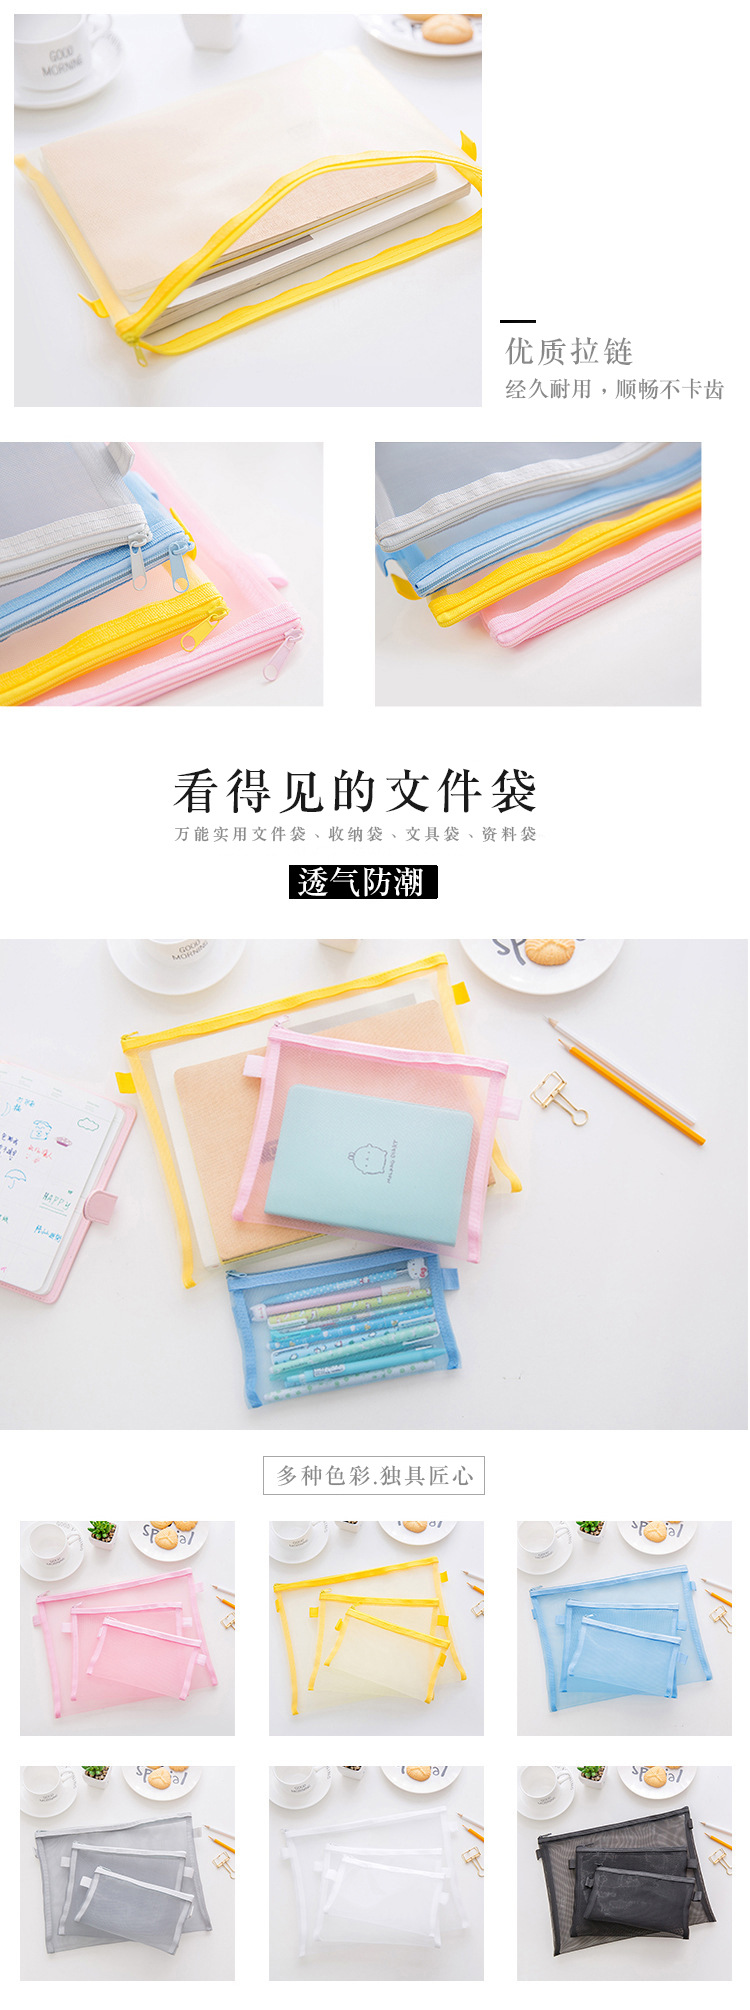 A4 A5 A6 Transparent clear file folder zipper pencil pouch school supplier stationary document bag